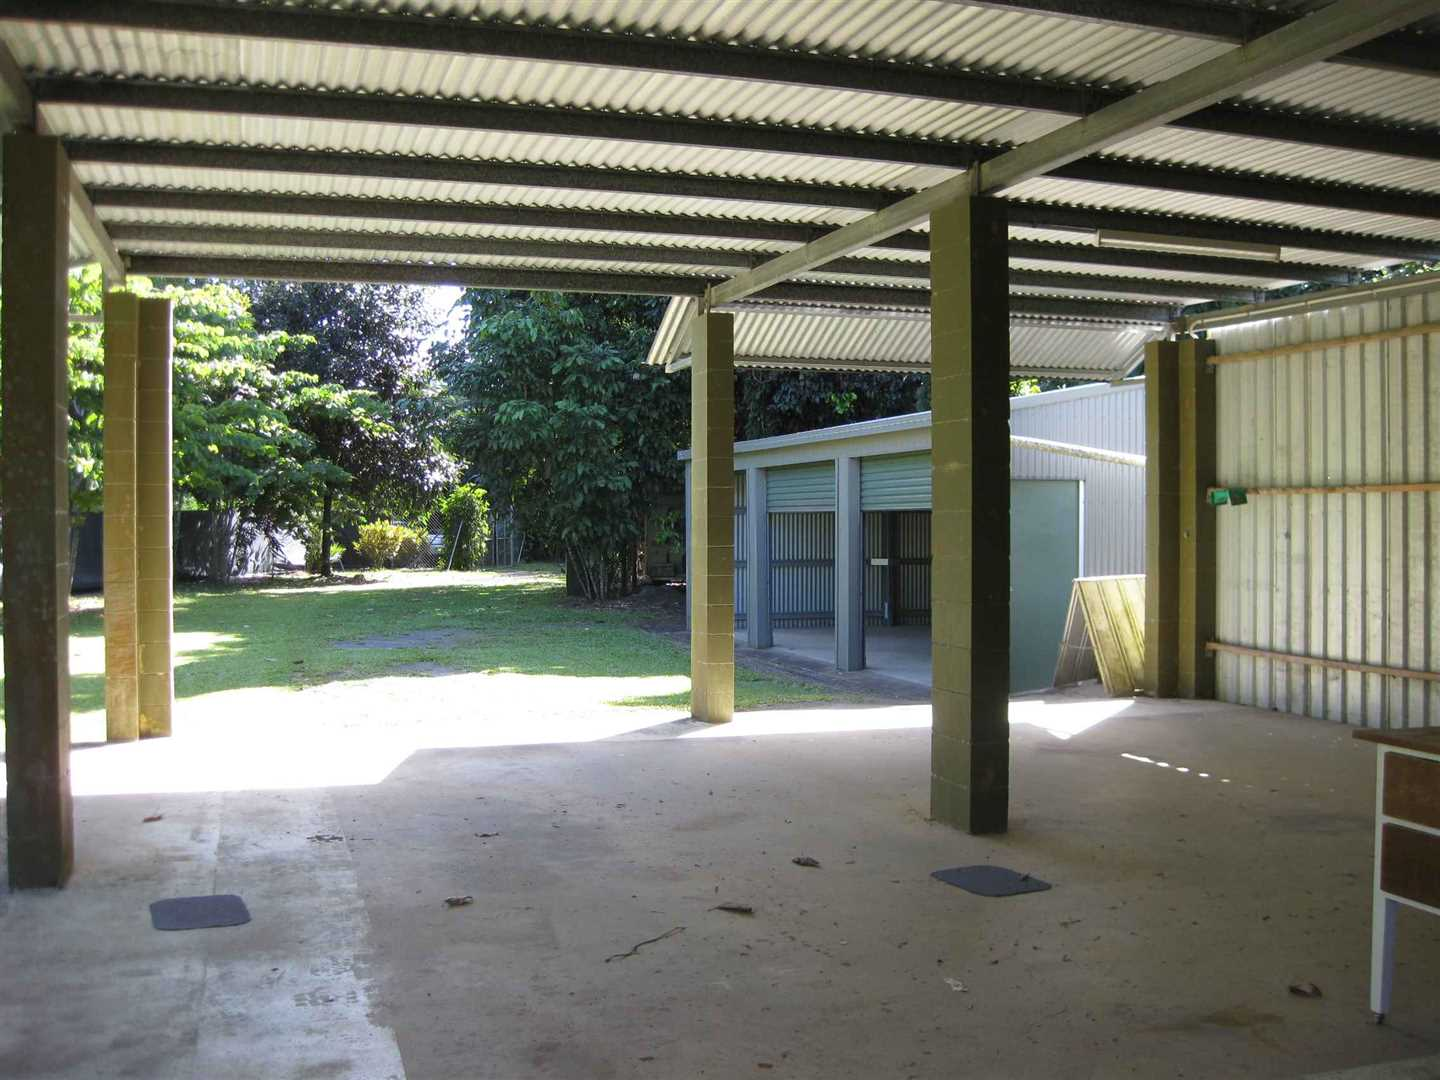 Inside view of part of two bay carport, photo 1